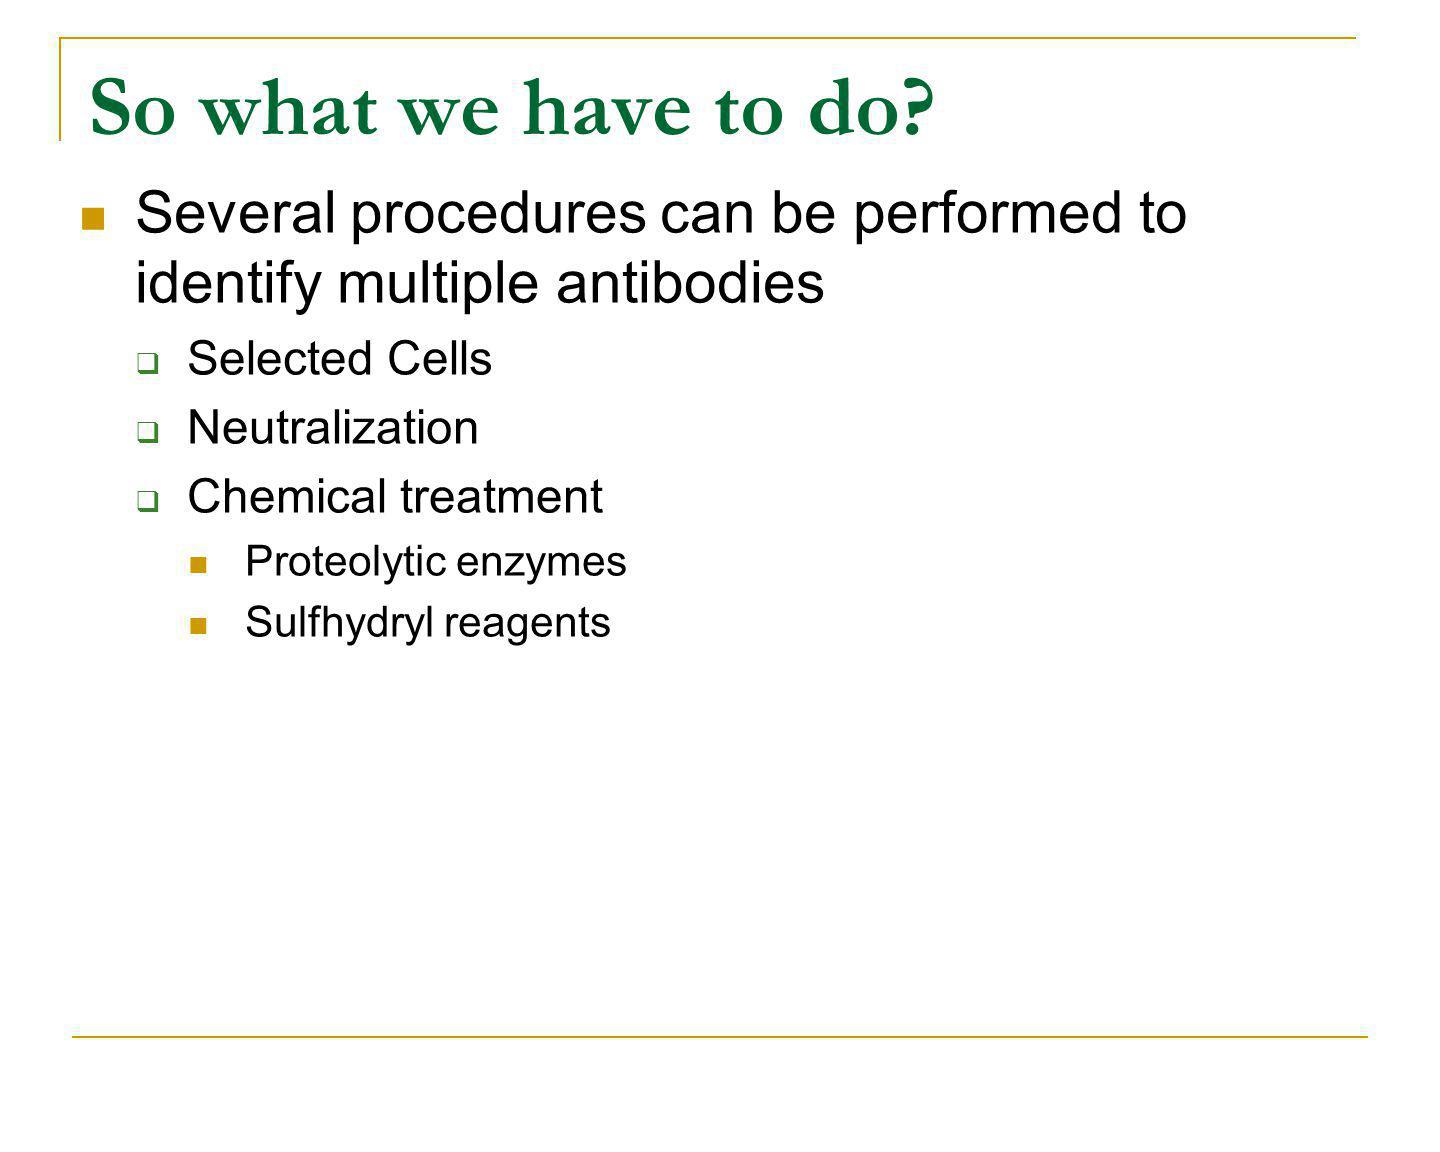 So what we have to do? Several procedures can be performed to identify multiple antibodies Selected Cells Neutralization Chemical treatment Proteolyti